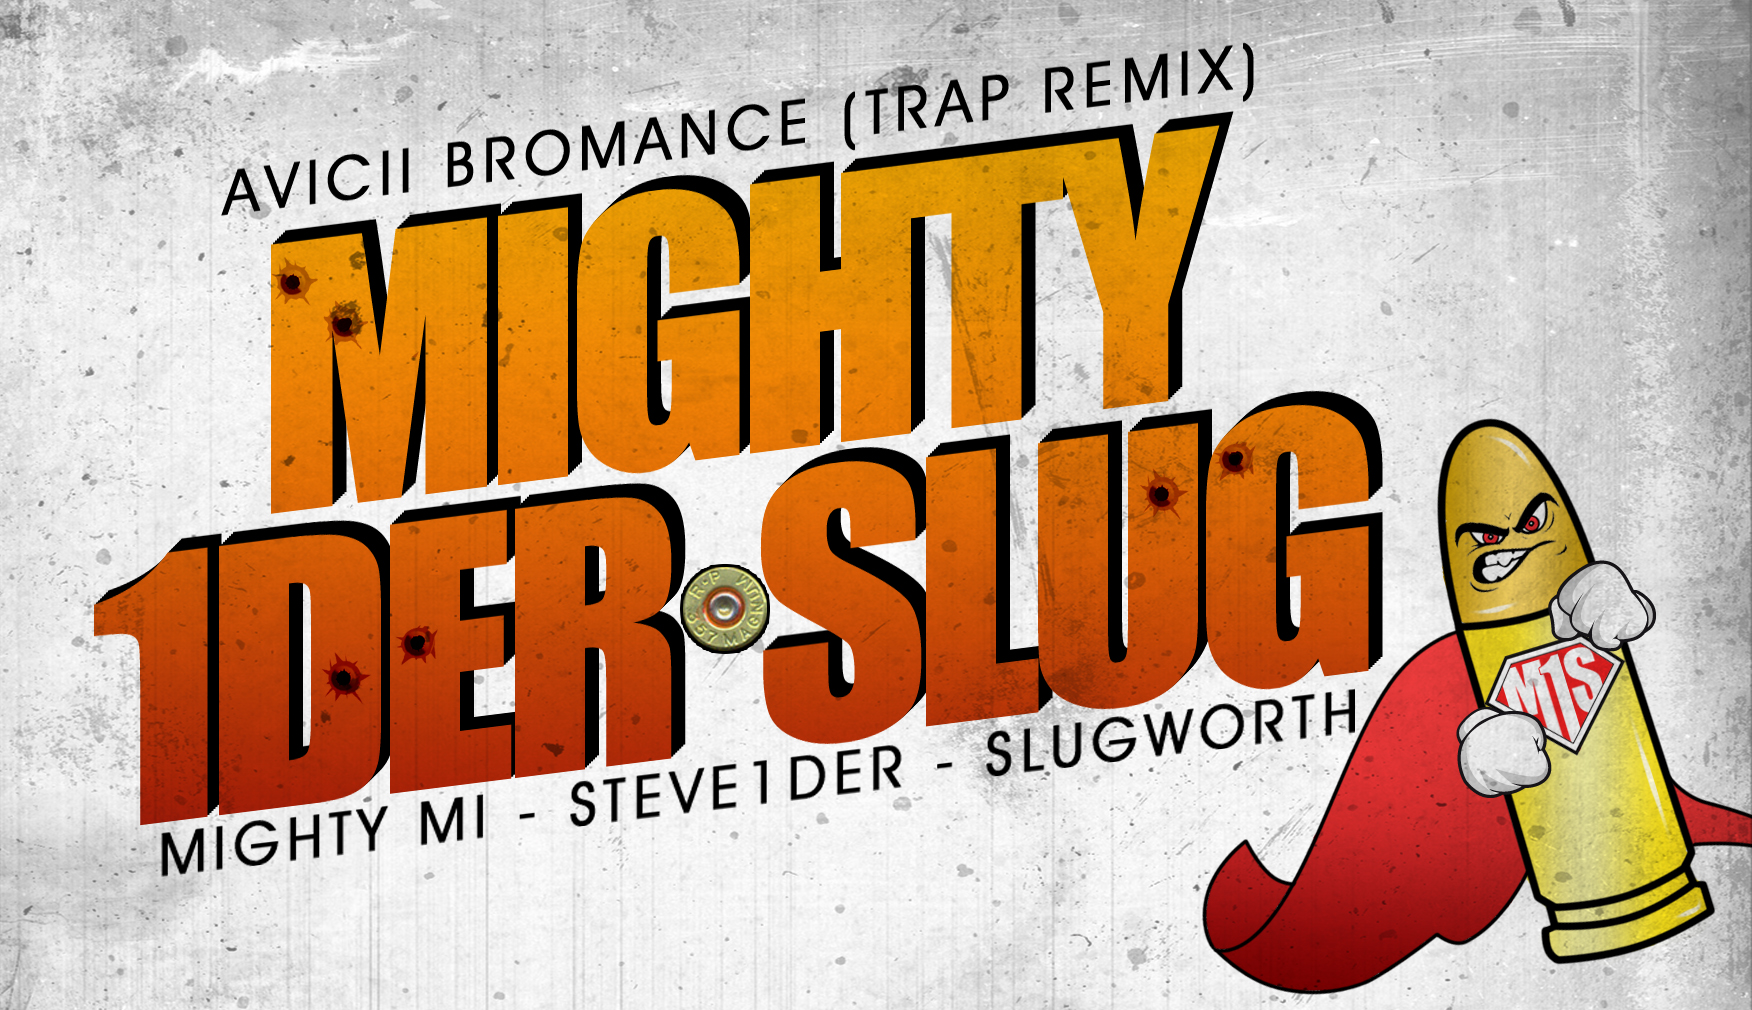 Bromance (Mighty-1der-Slug Trap Mix) Mighty Mi - Steve1der - Slugworth